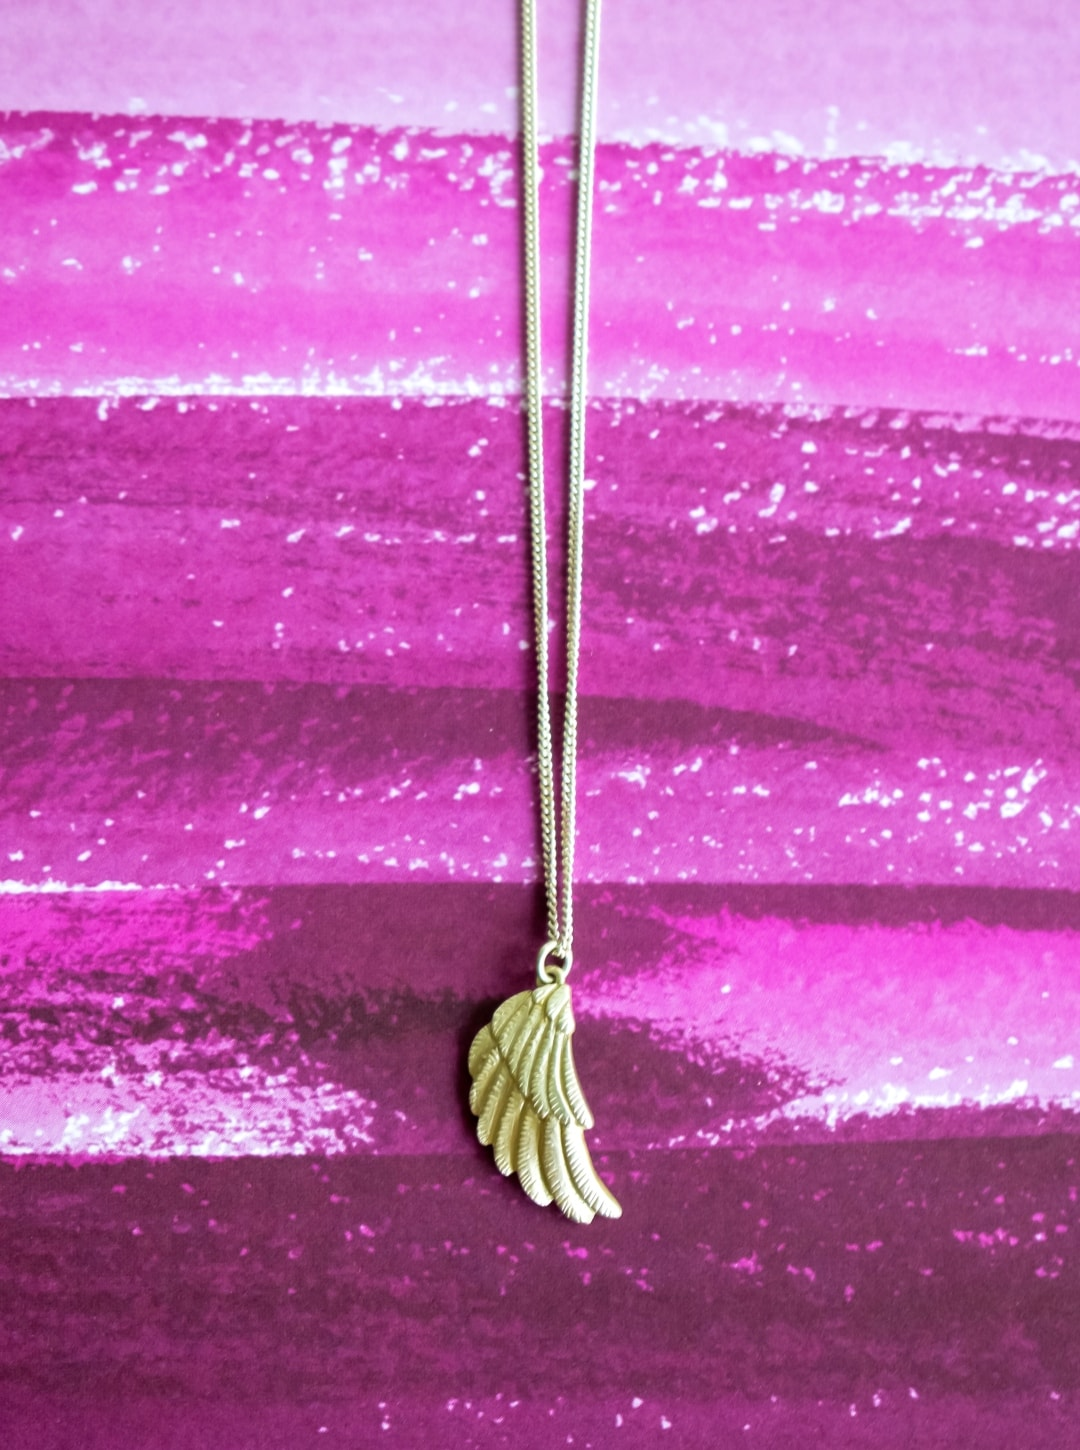 A photograph of a Jana Reinhardt original silver wing necklace - a perfect gift for a baby loss mama - Silver Wing Necklace By Jana Reinhardt - A Review - Mrs H's favourite things